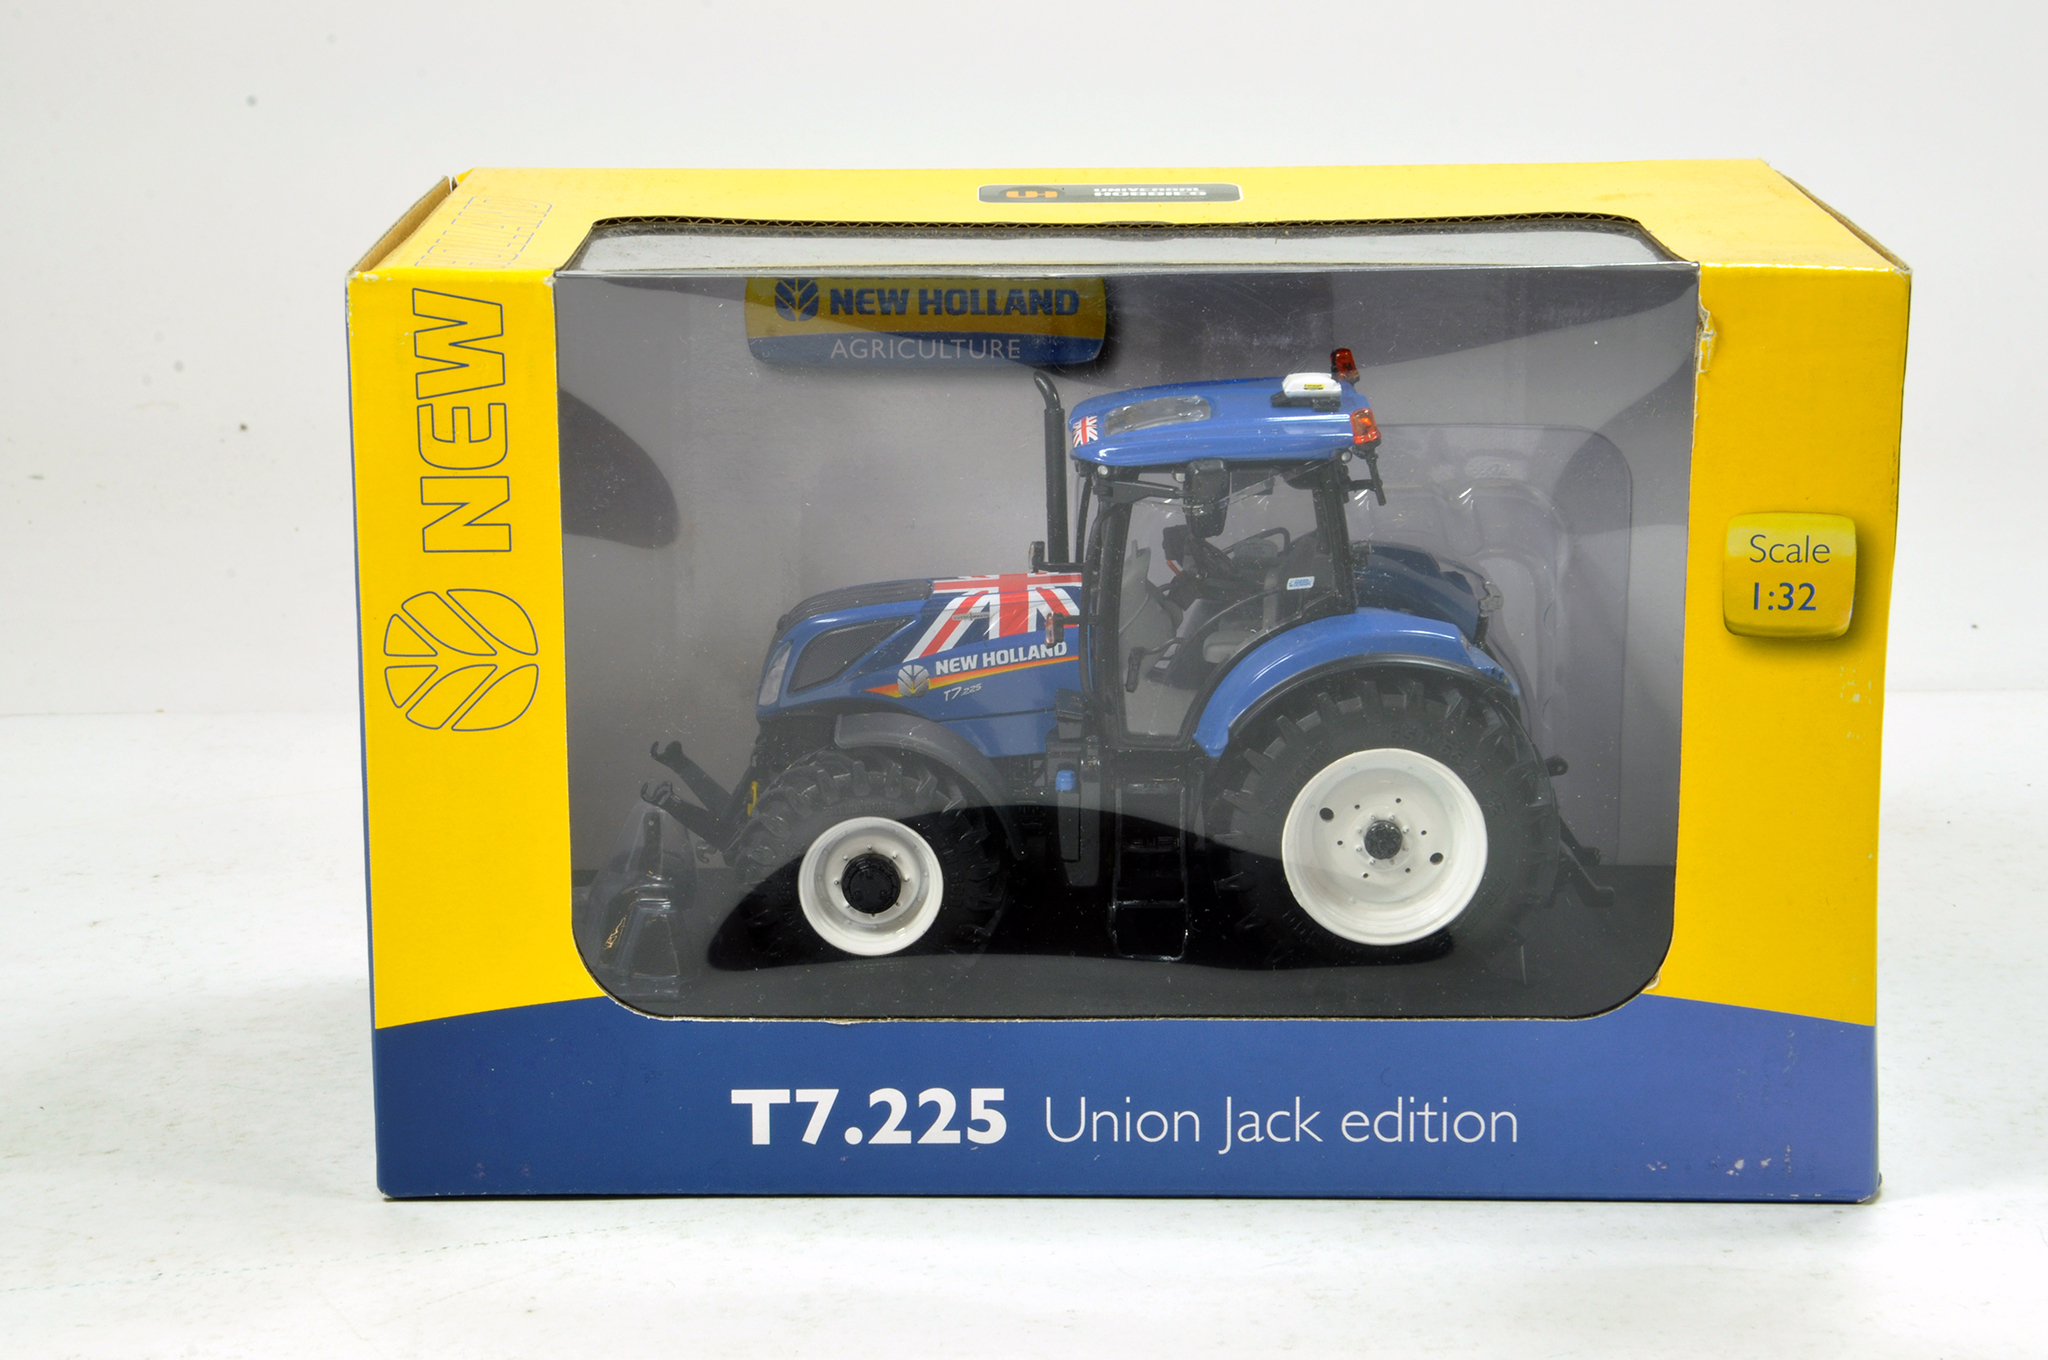 Lot 960 - Universal Hobbies 1/32 New Holland T7.225 Union Jack Tractor. NM in Box.